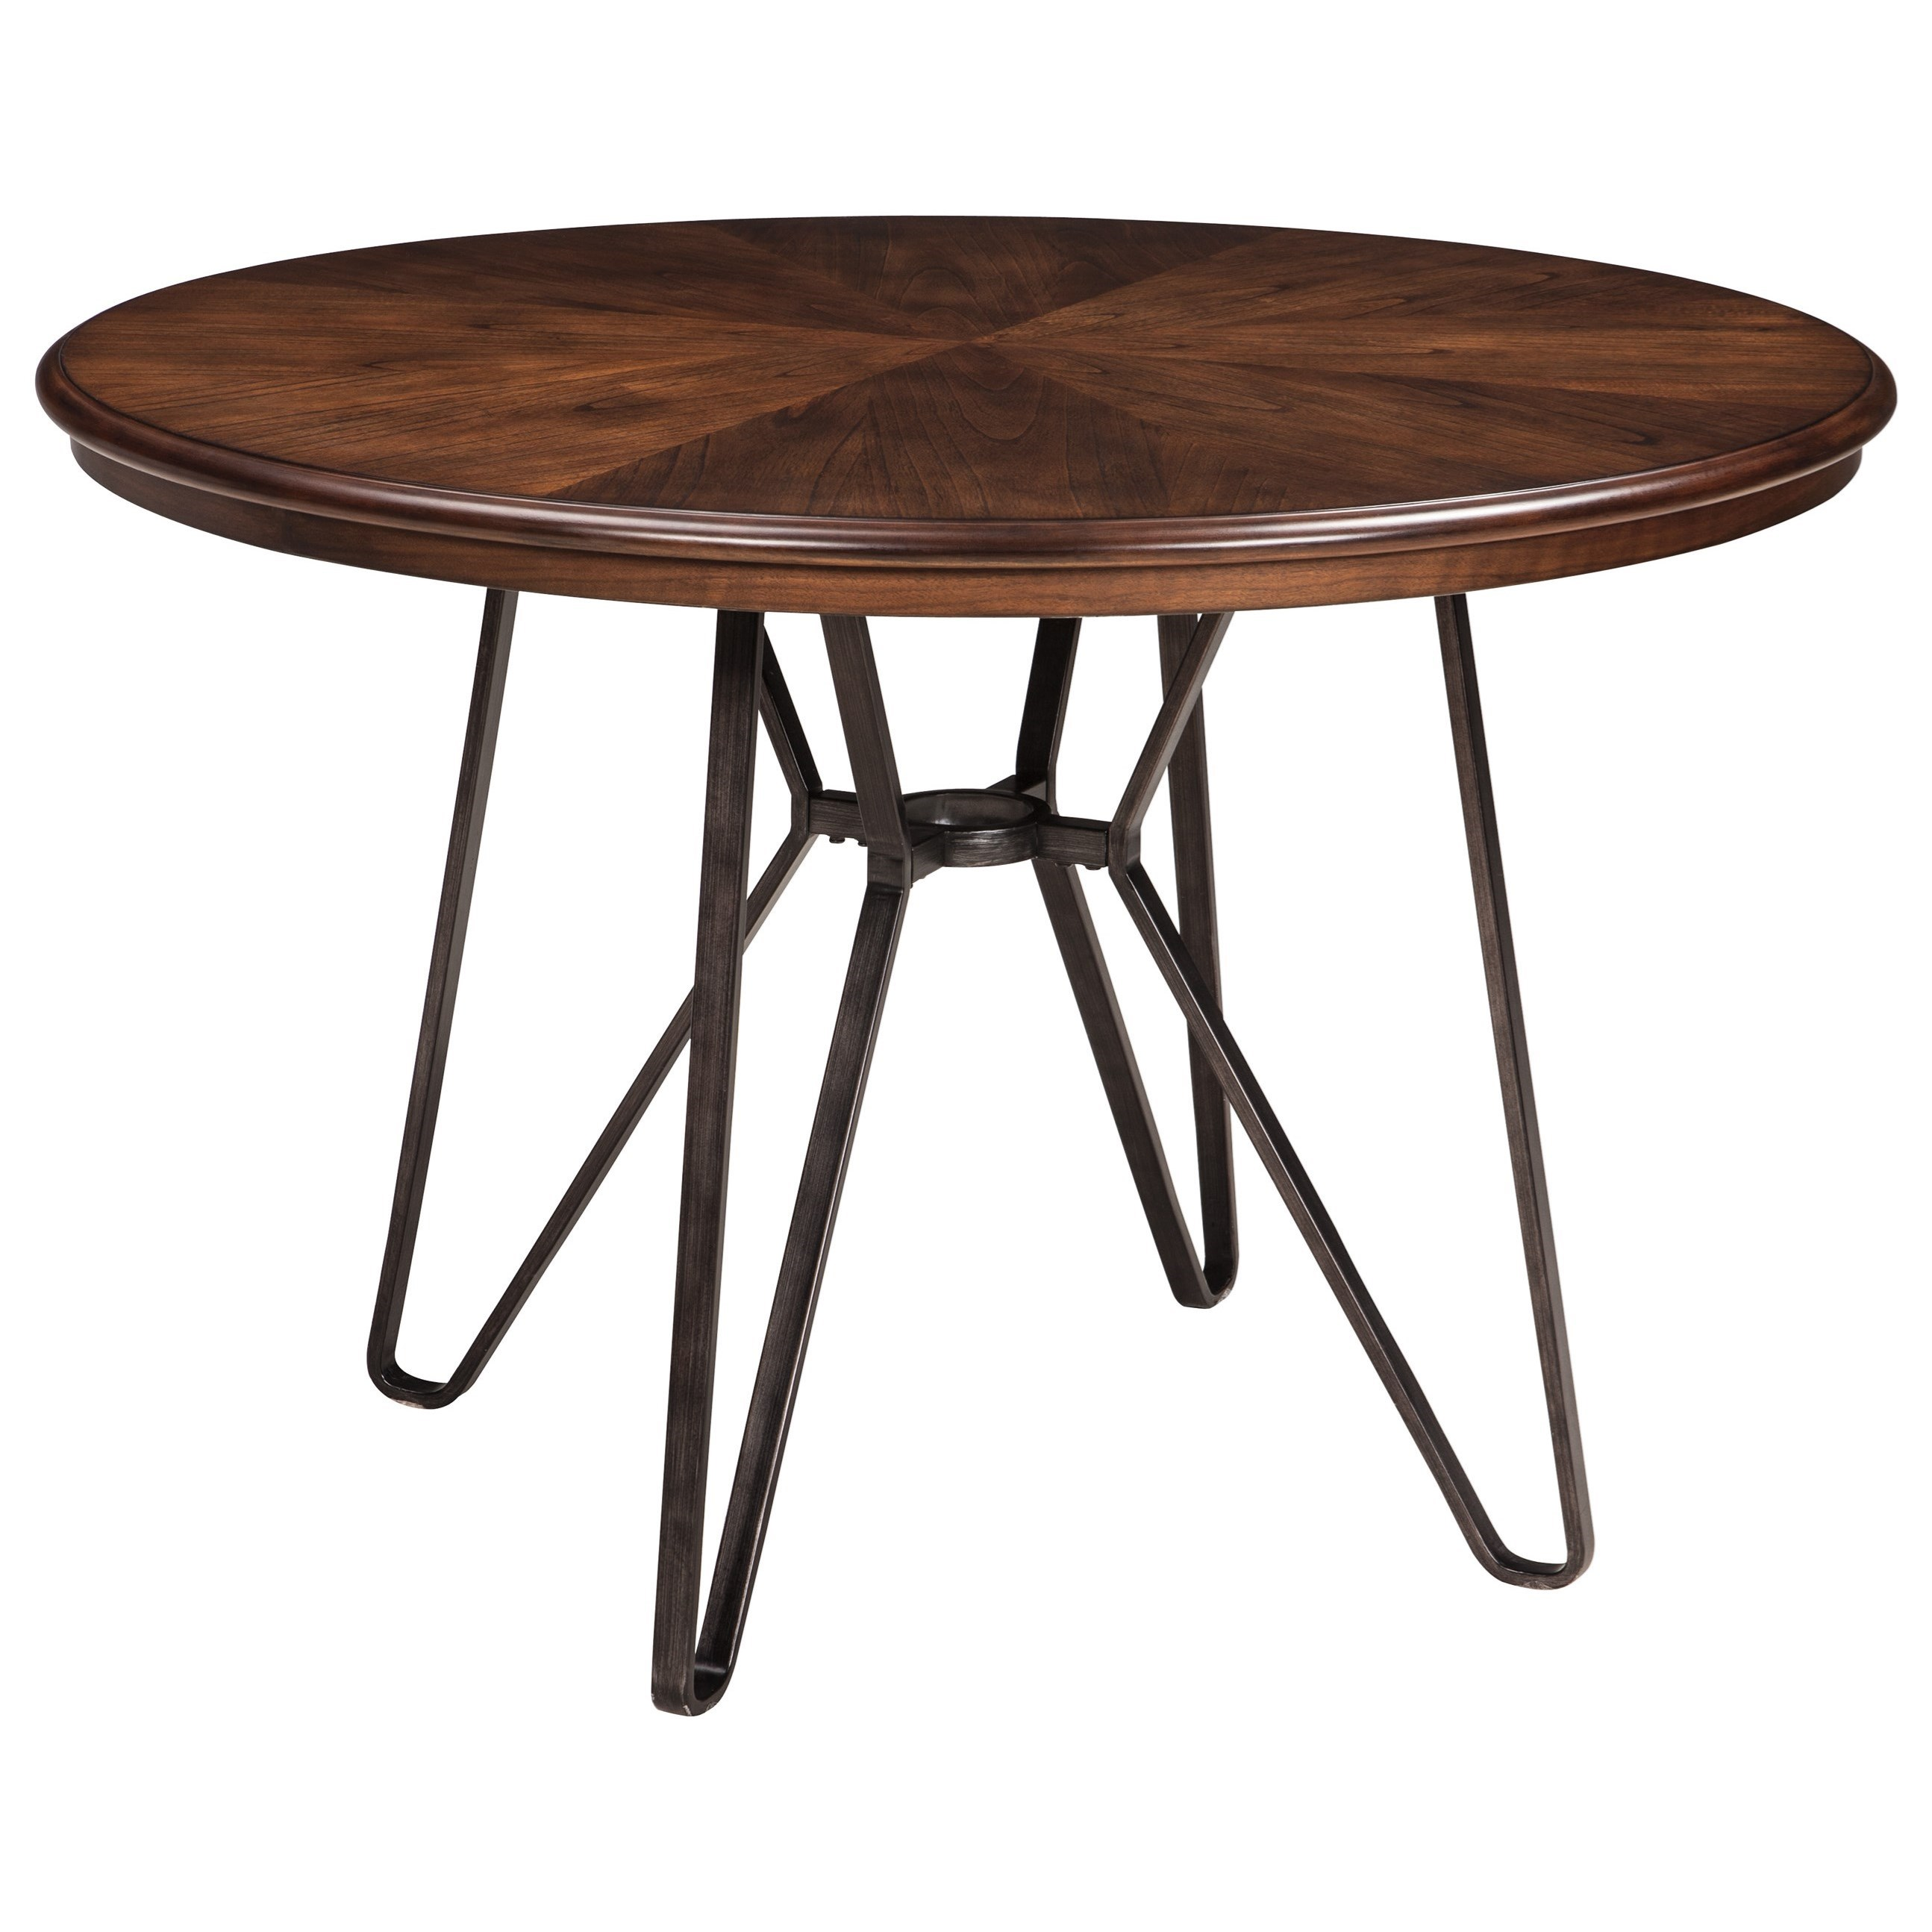 Signature design by ashley centiar round dining room table for Table 6 kitchen and bar canton ohio